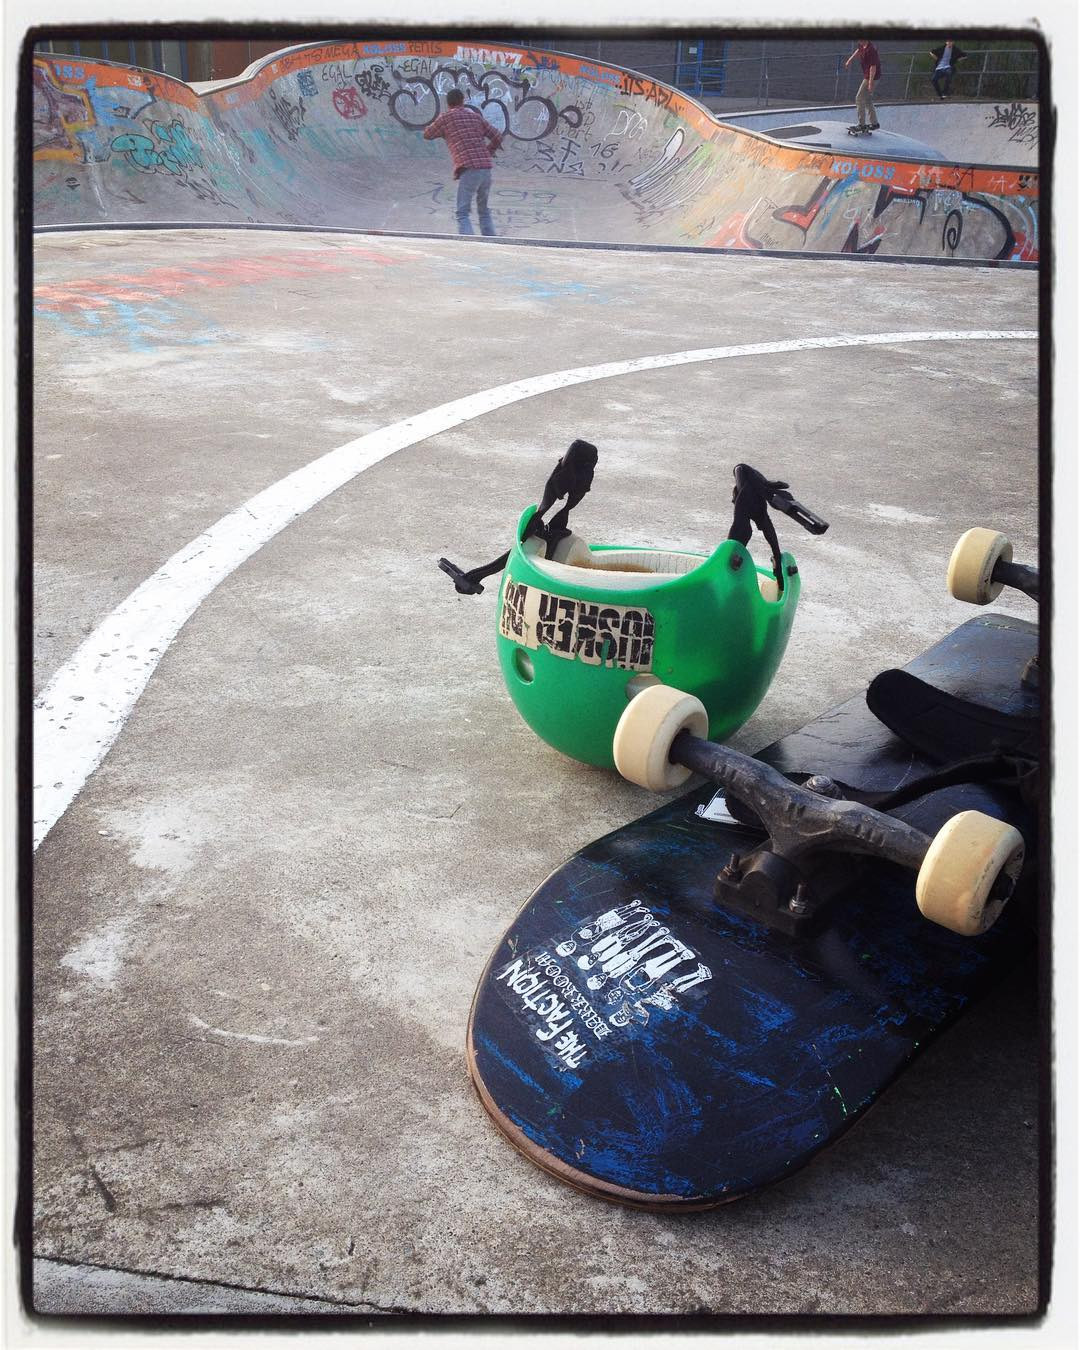 Todays After work session at the Berg with Lui and Novak. Some cool stickers on Lui's ride. #bergfidel #monsterbowl #pool #bowl #concrete #bailgun